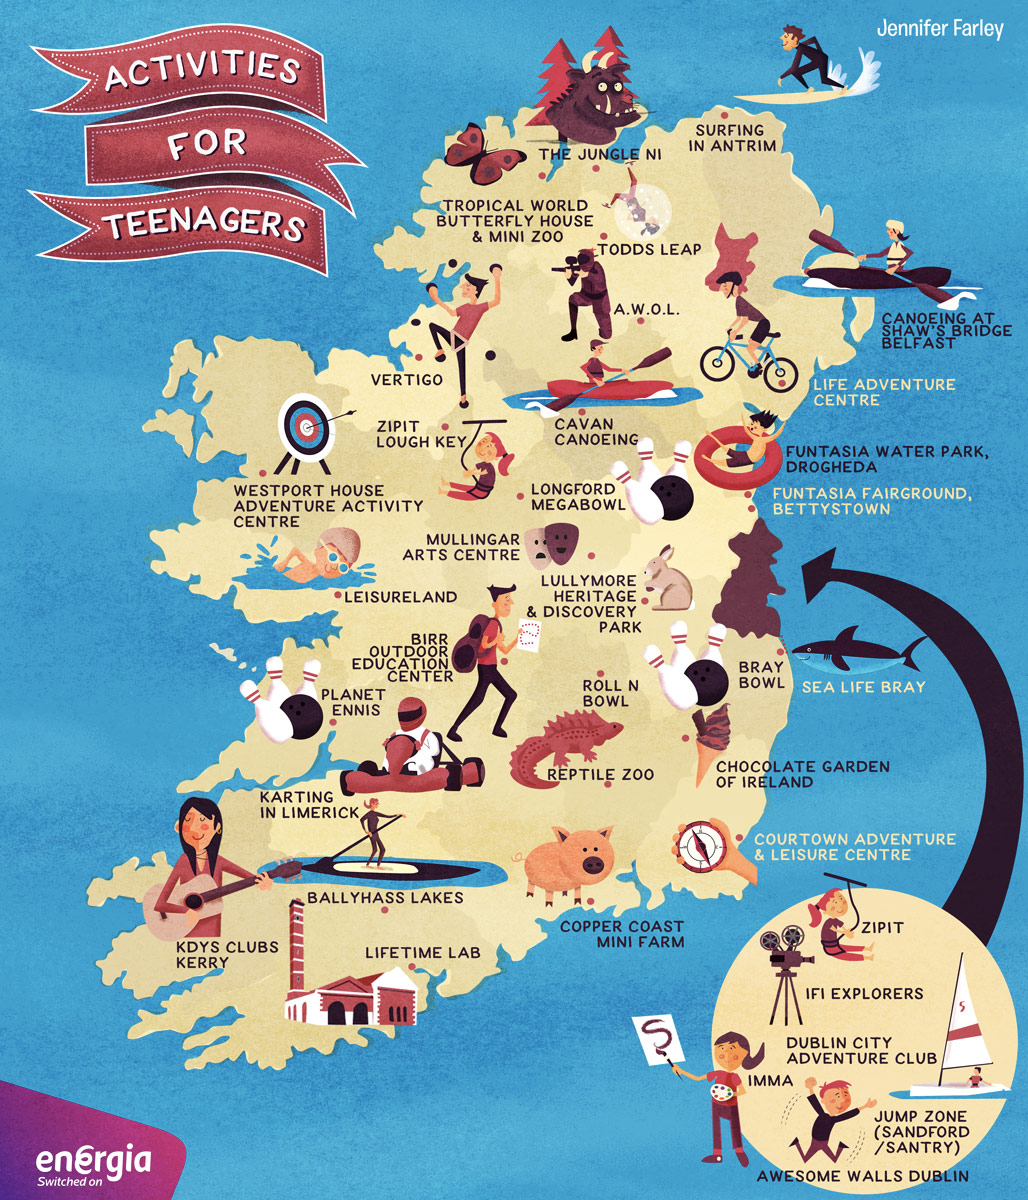 Images Of Map Of Ireland.Activities For Teenagers Map Of Ireland Jennifer Farley